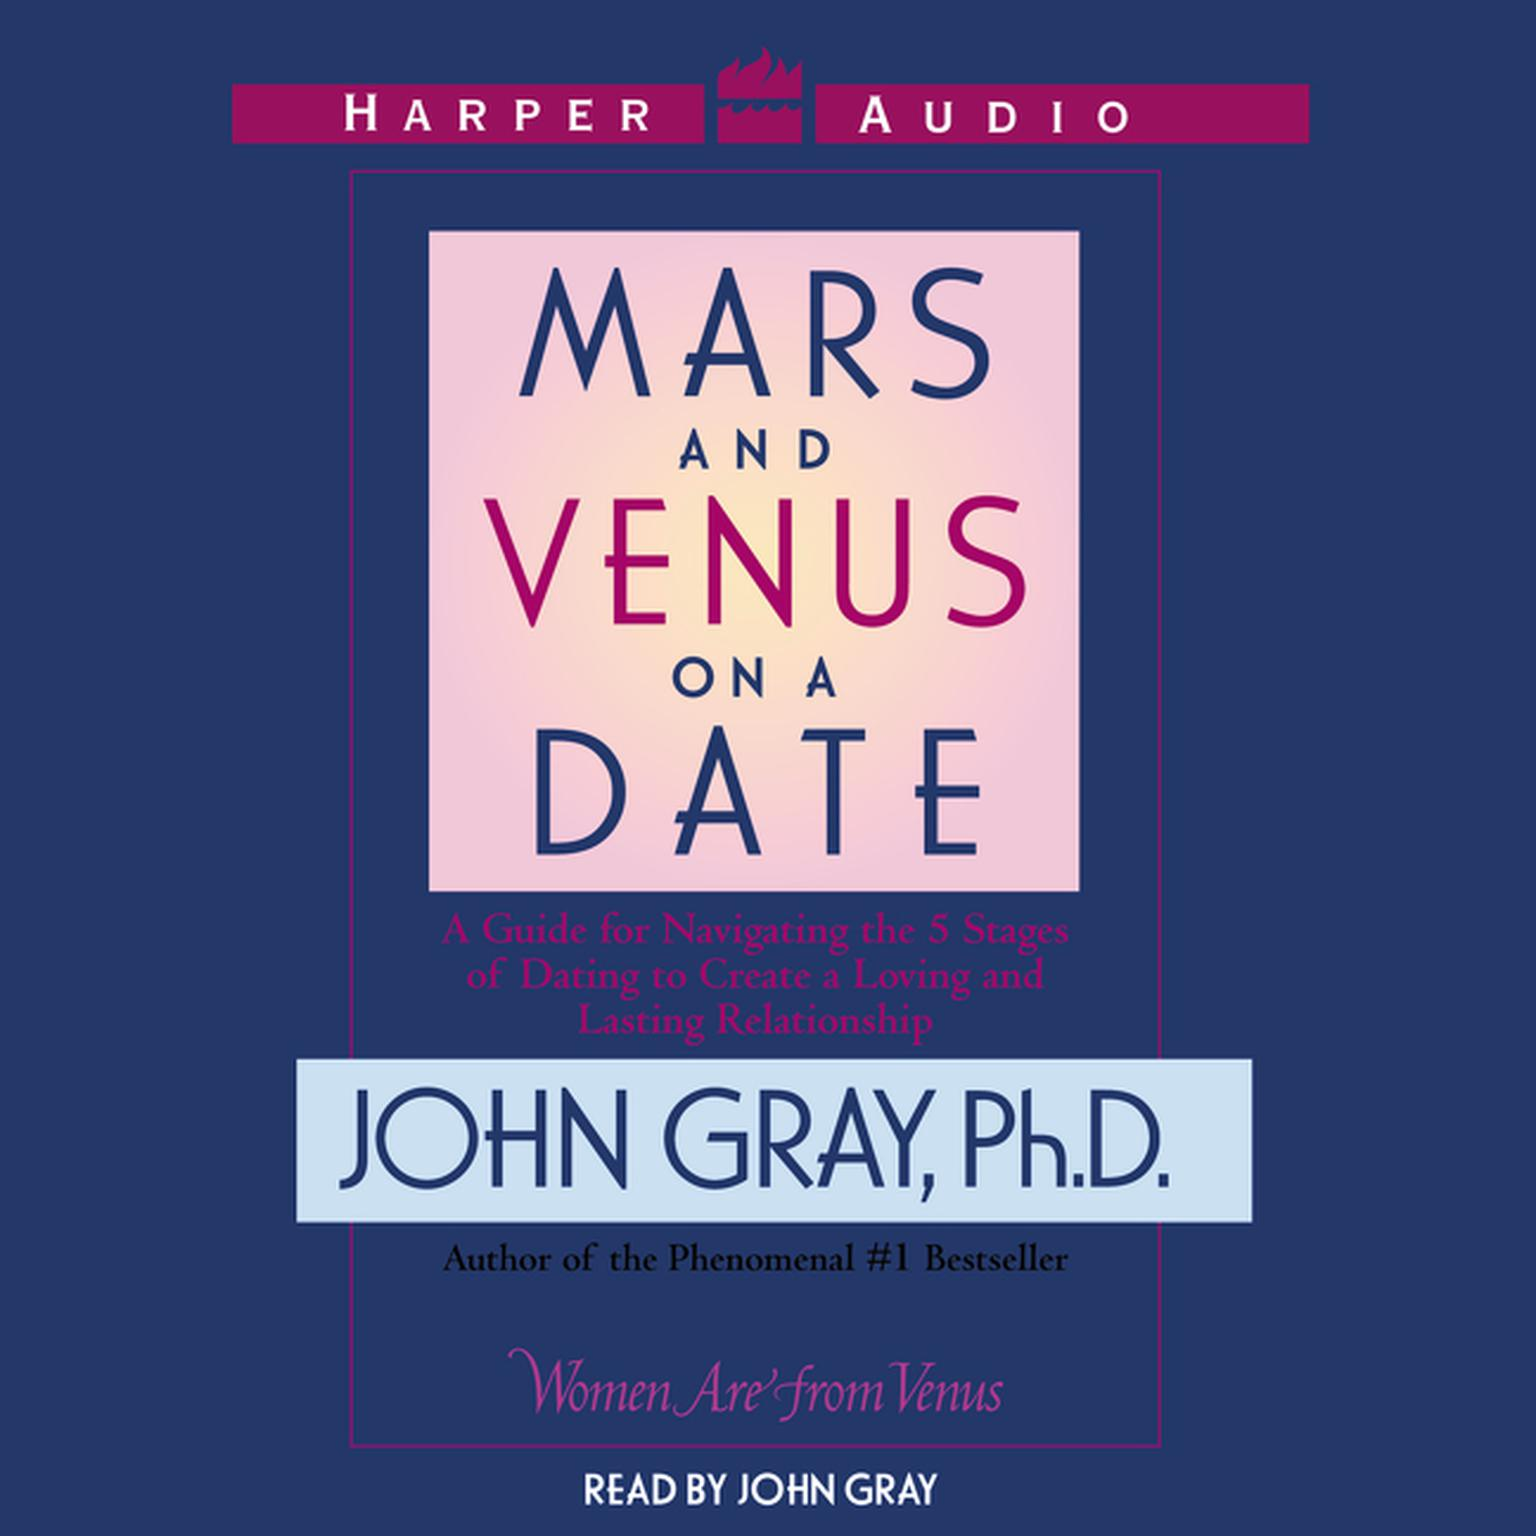 Equipments And Of 5 Mars Dating Stages Venus can